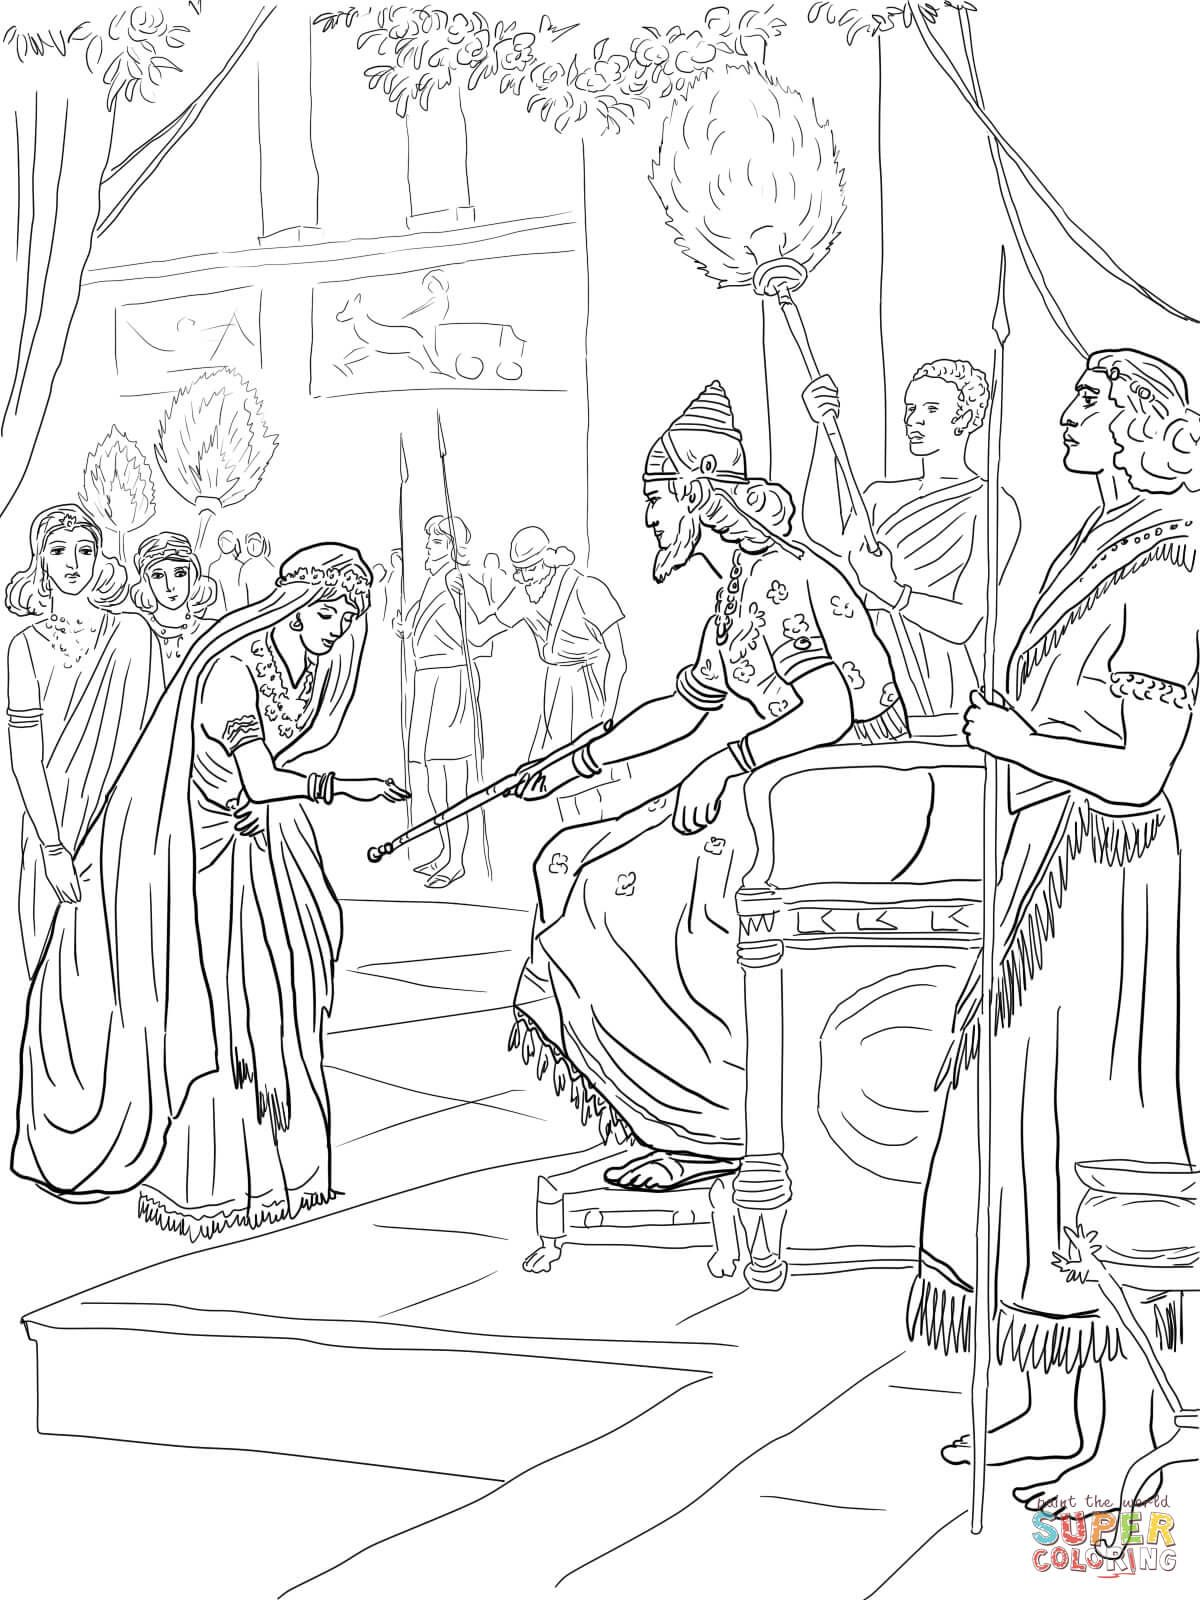 Esther And King Xerxes Super Coloring Coloring Pages Veterans Day Coloring Page Bible Coloring Pages [ 1600 x 1200 Pixel ]